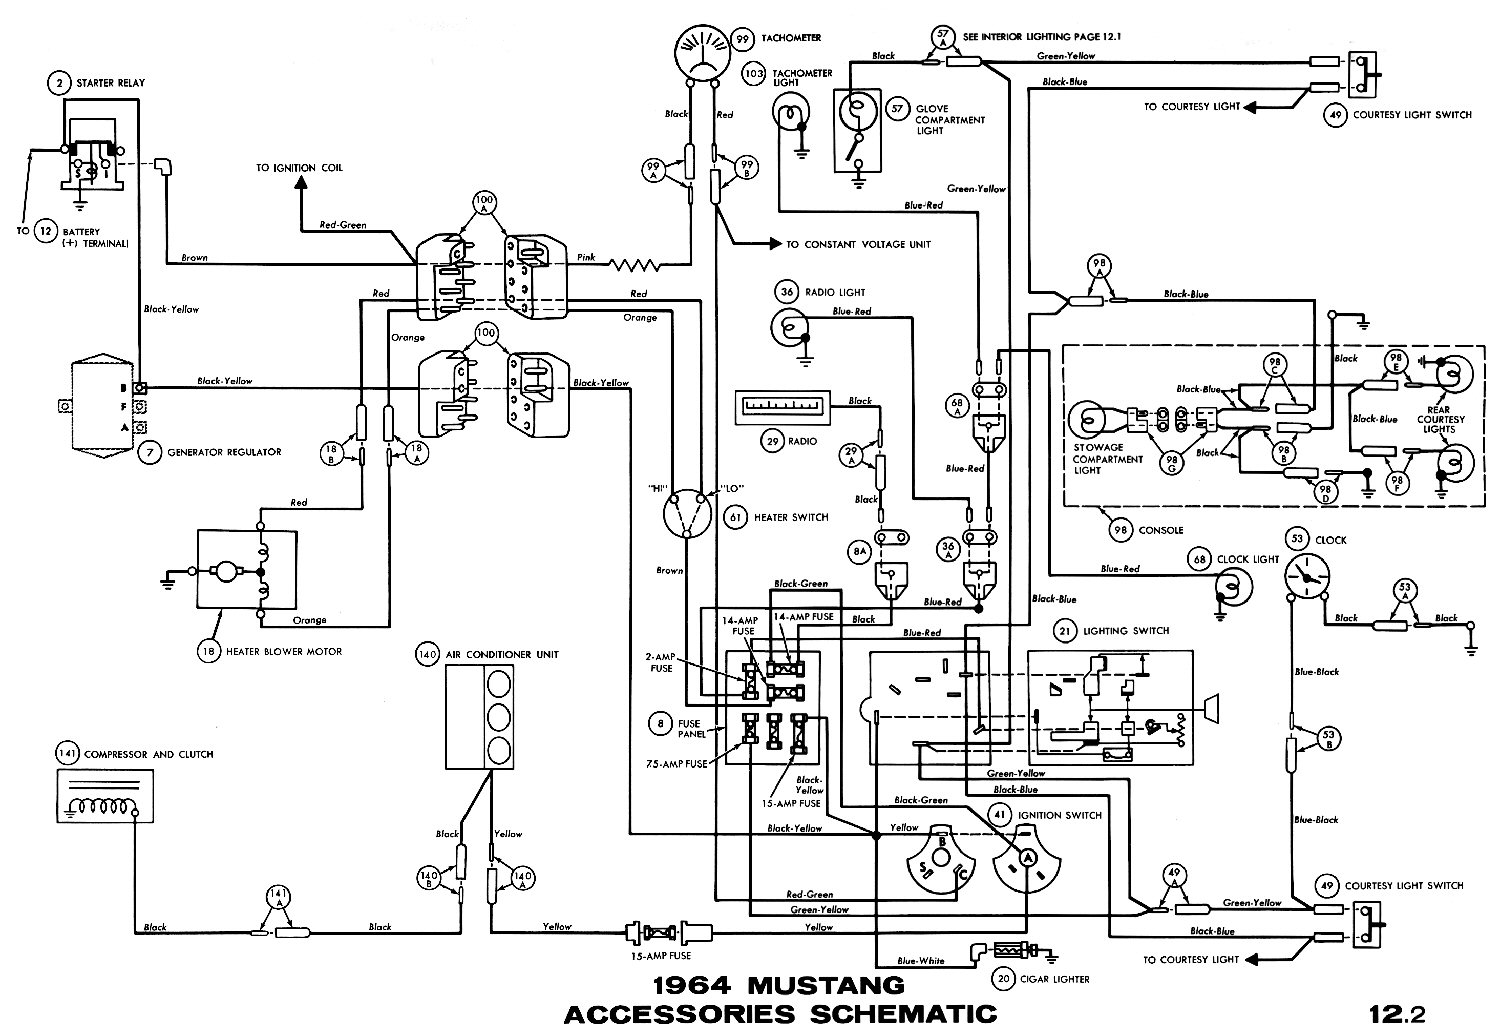 1965 Mustang Color Wiring Diagram Data Likewise Light Switch On For Blower Fan Ford 65 Dash Panel